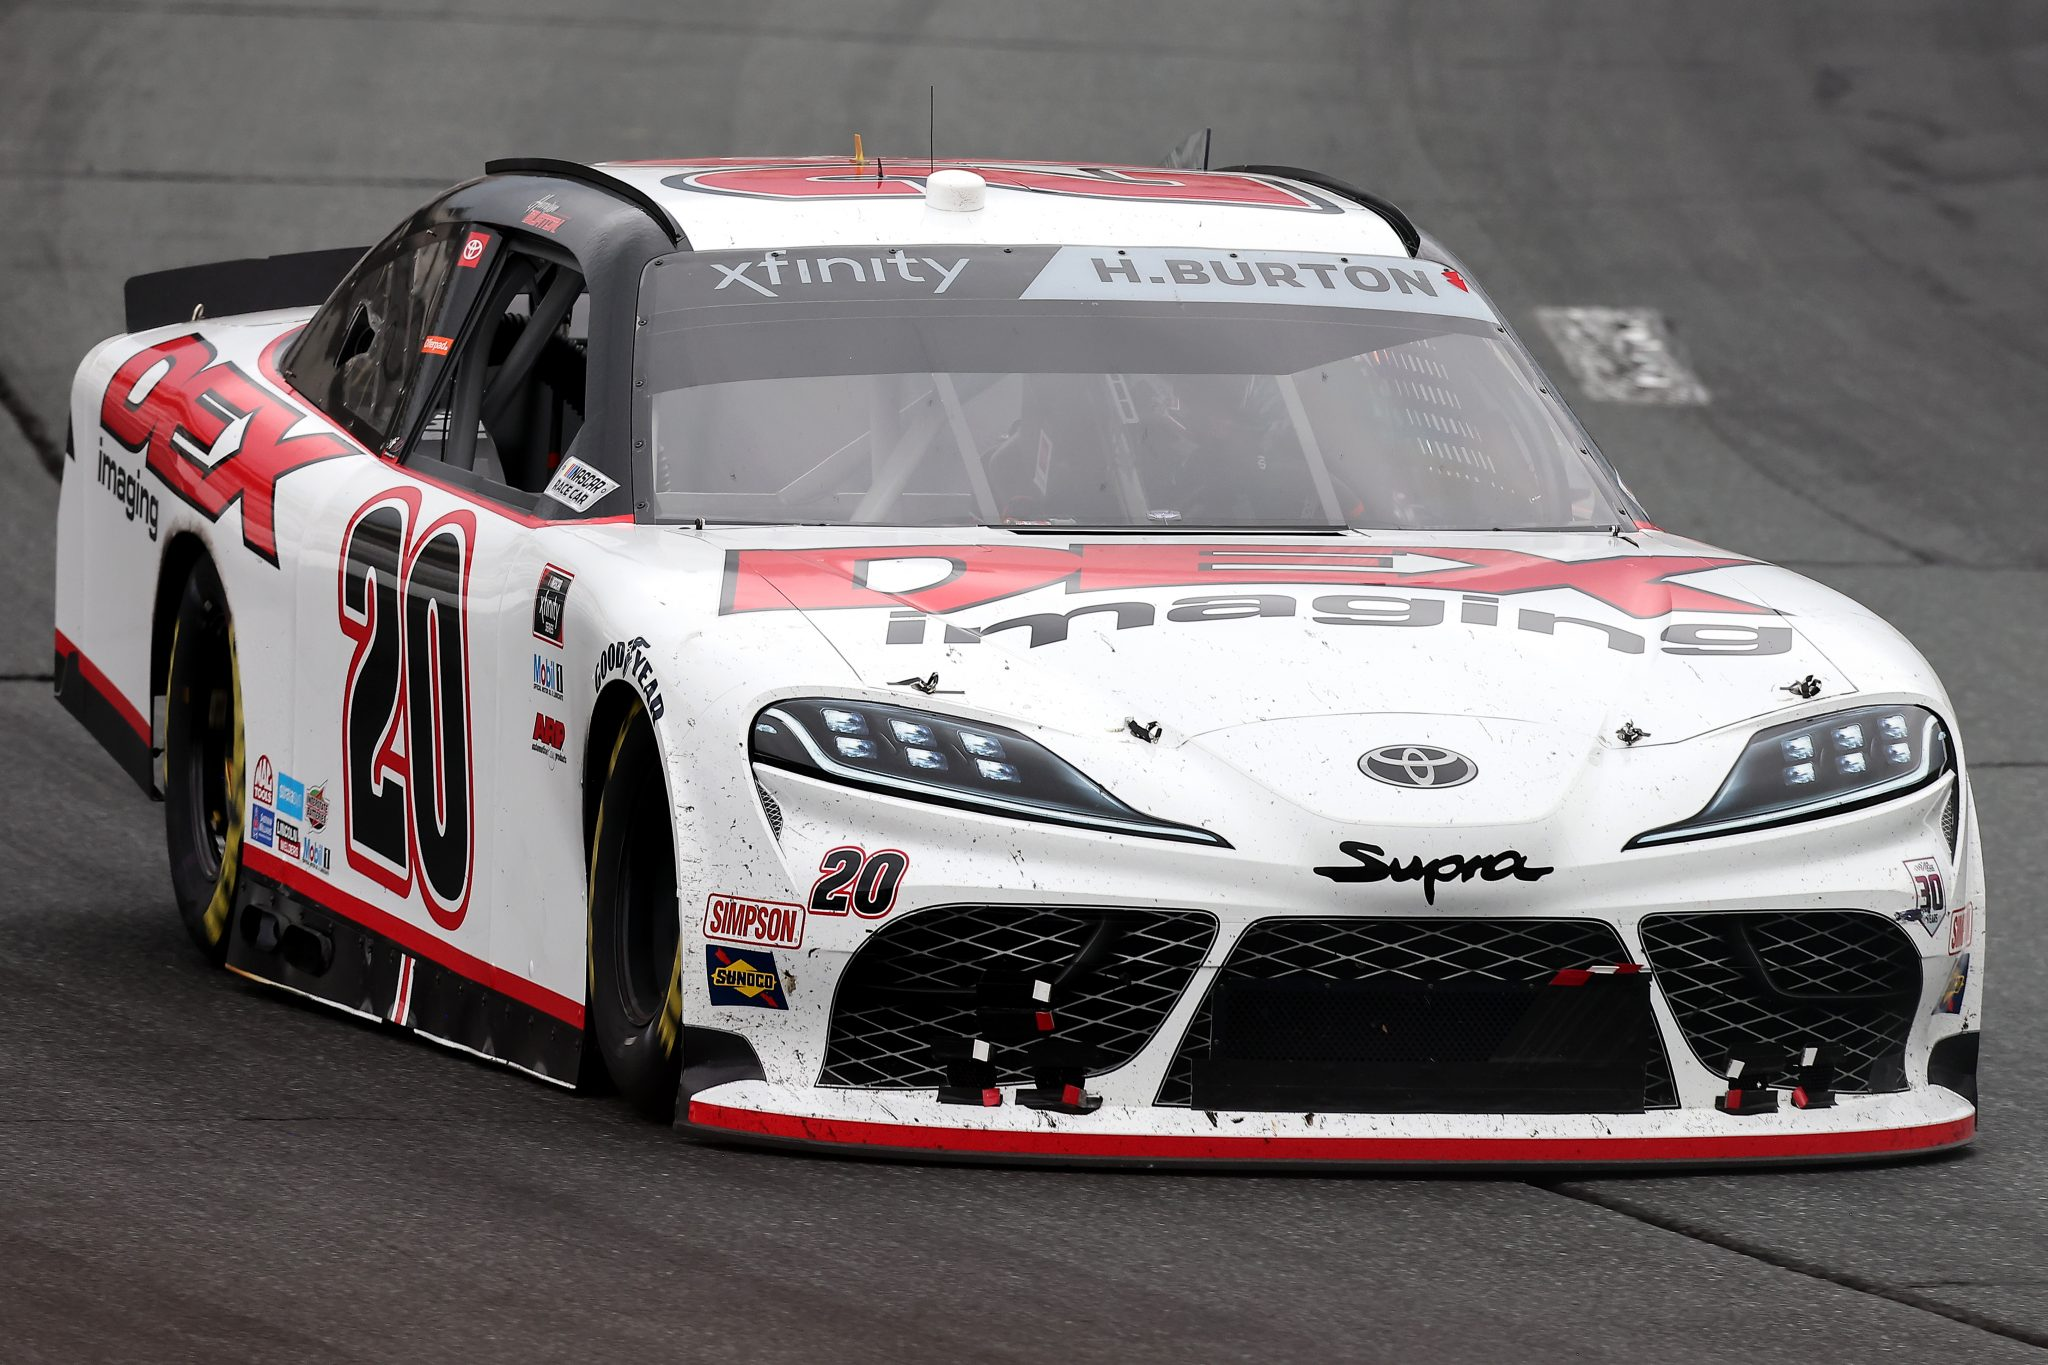 LOUDON, NEW HAMPSHIRE - JULY 17: Harrison Burton, driver of the #20 DEX Imaging Toyota, drives during the NASCAR Xfinity Series Ambetter Get Vaccinated 200 at New Hampshire Motor Speedway on July 17, 2021 in Loudon, New Hampshire. (Photo by James Gilbert/Getty Images) | Getty Images